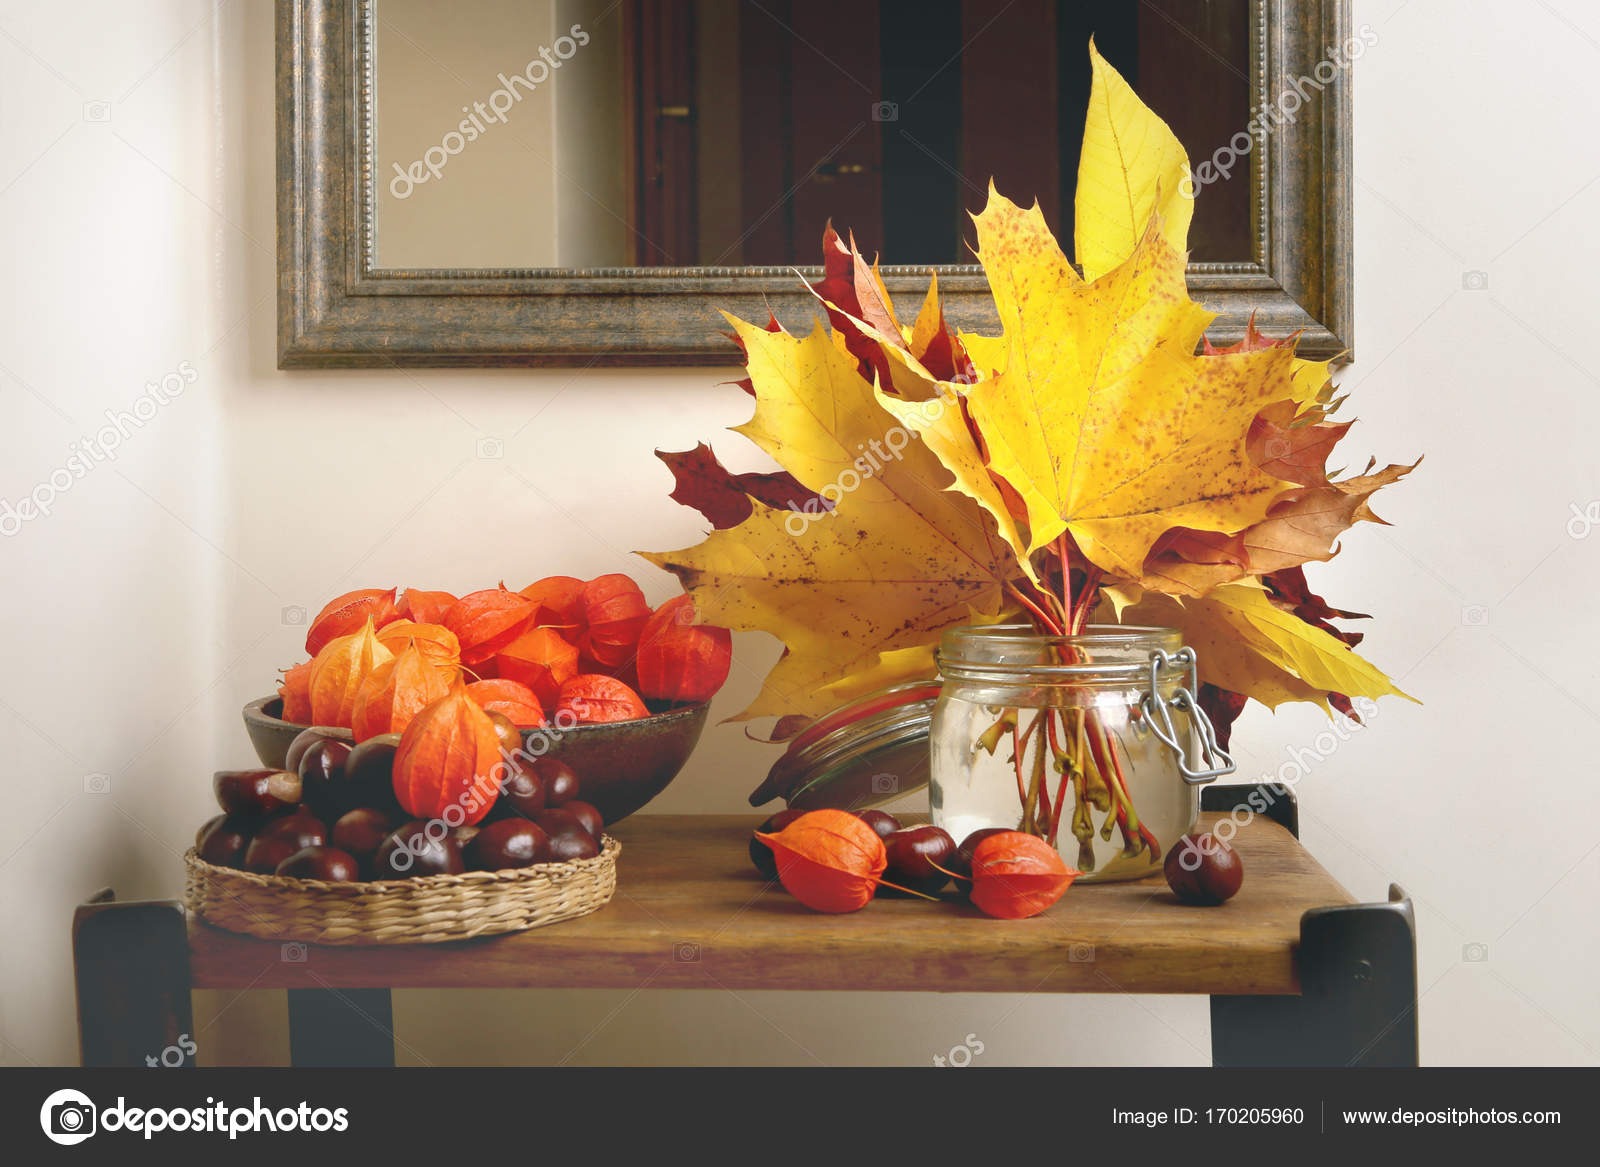 Herfst Interieur Herfst Plant Decoraties In Interieur Stockfoto Vaitekune